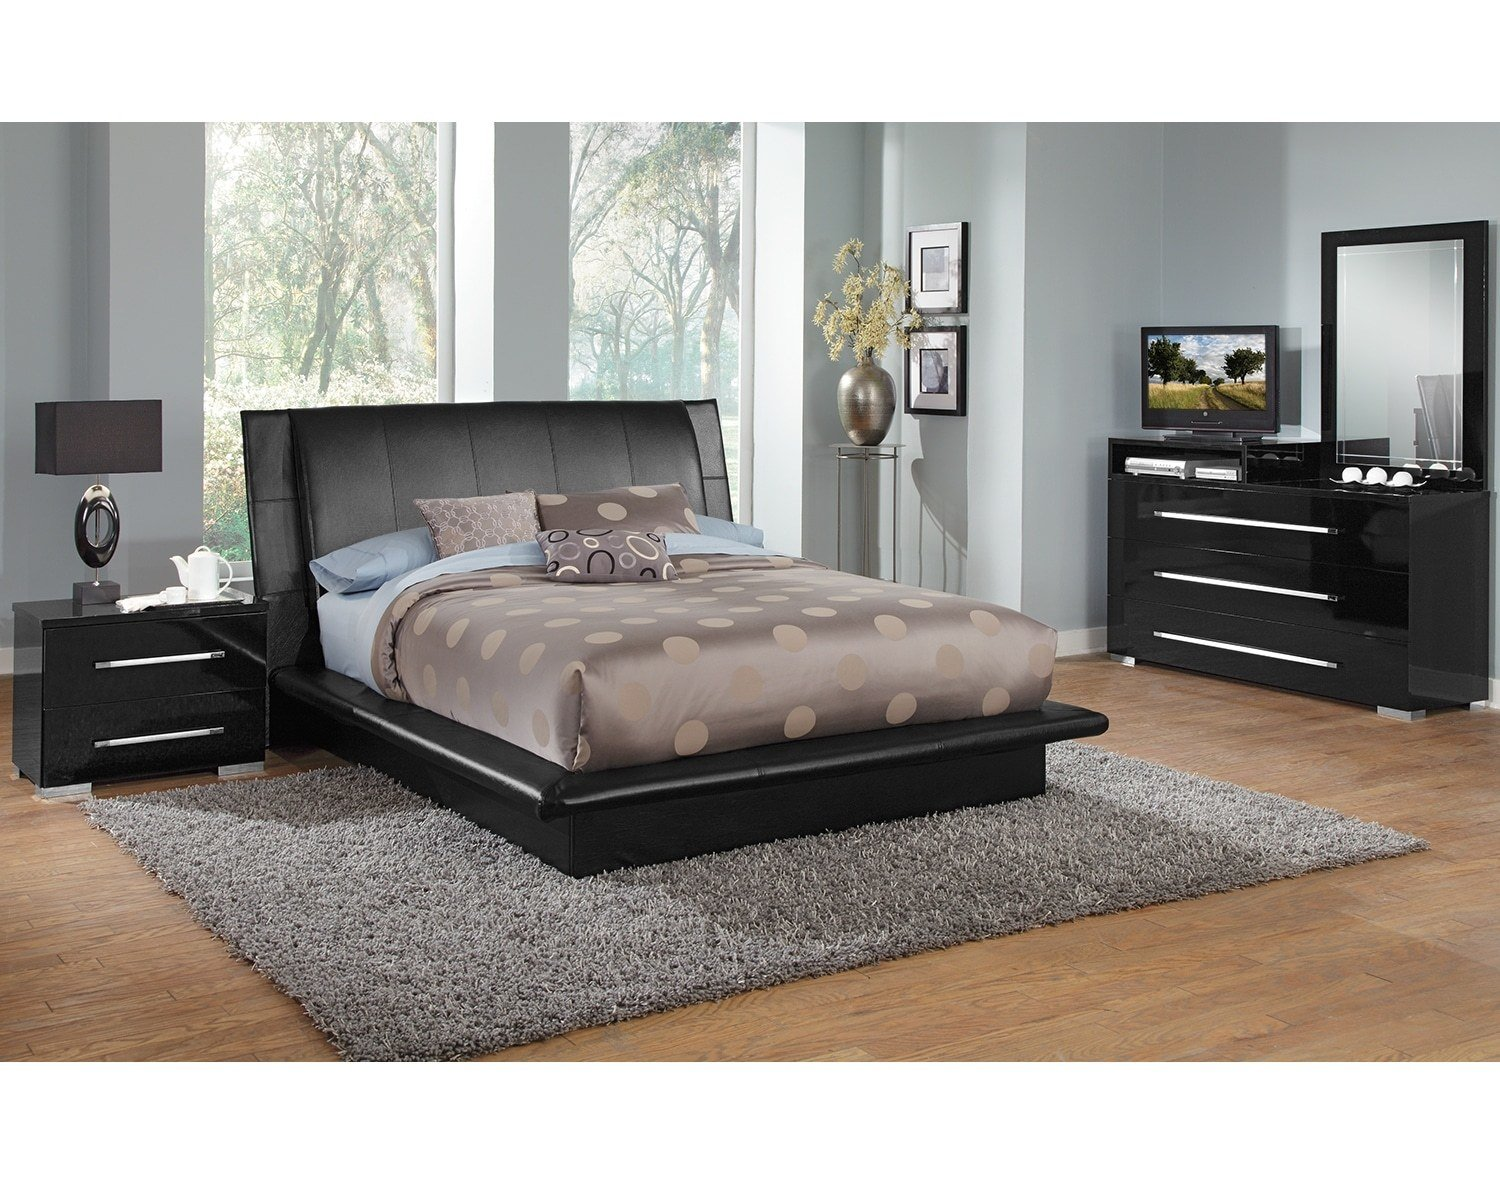 Best The Dimora Upholstered Collection Black Value City With Pictures